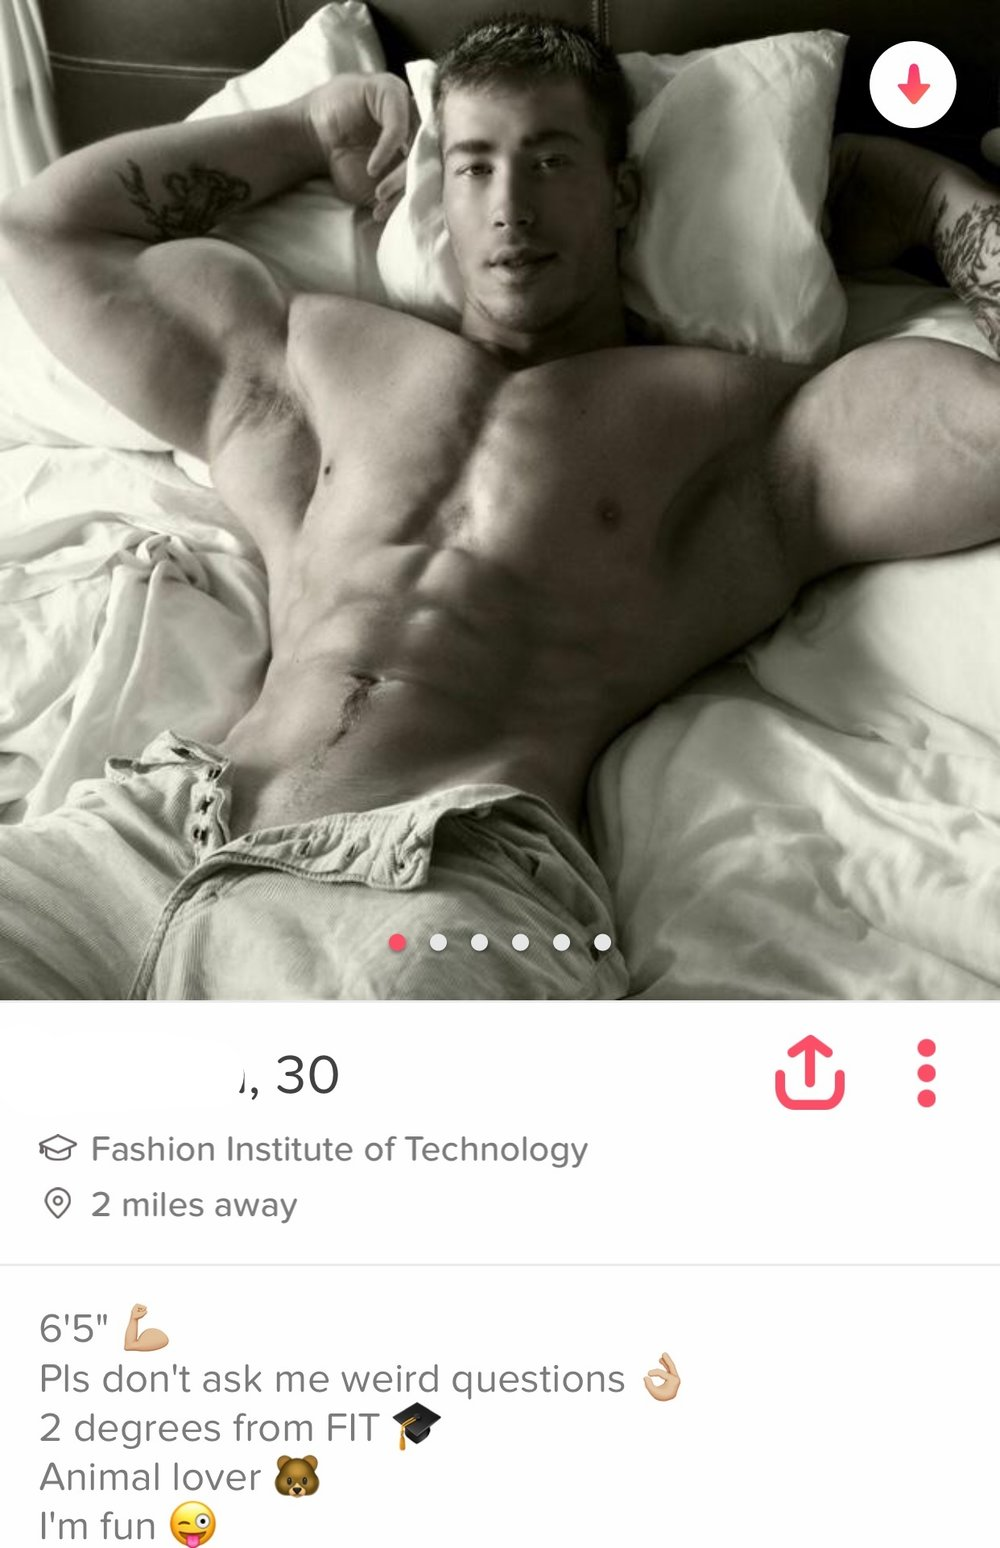 - He is HOT, but do you think this guy wants to have a serious relationship?